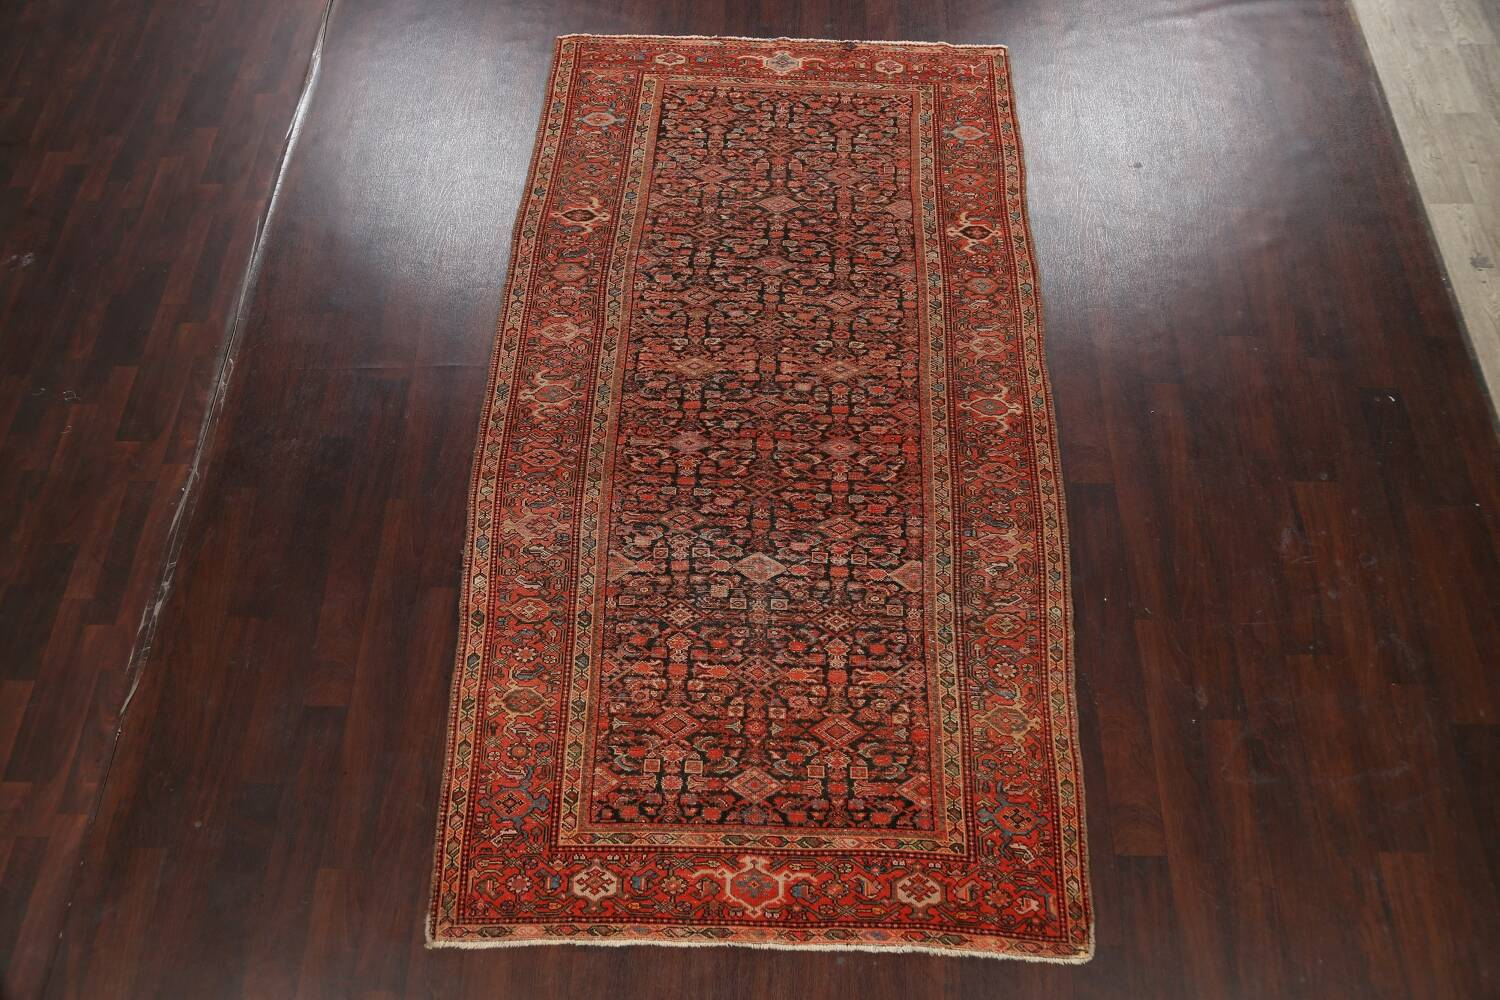 Pre-1900 Antique Vegetable Dye Malayer Persian Area Rug 5x10 image 2